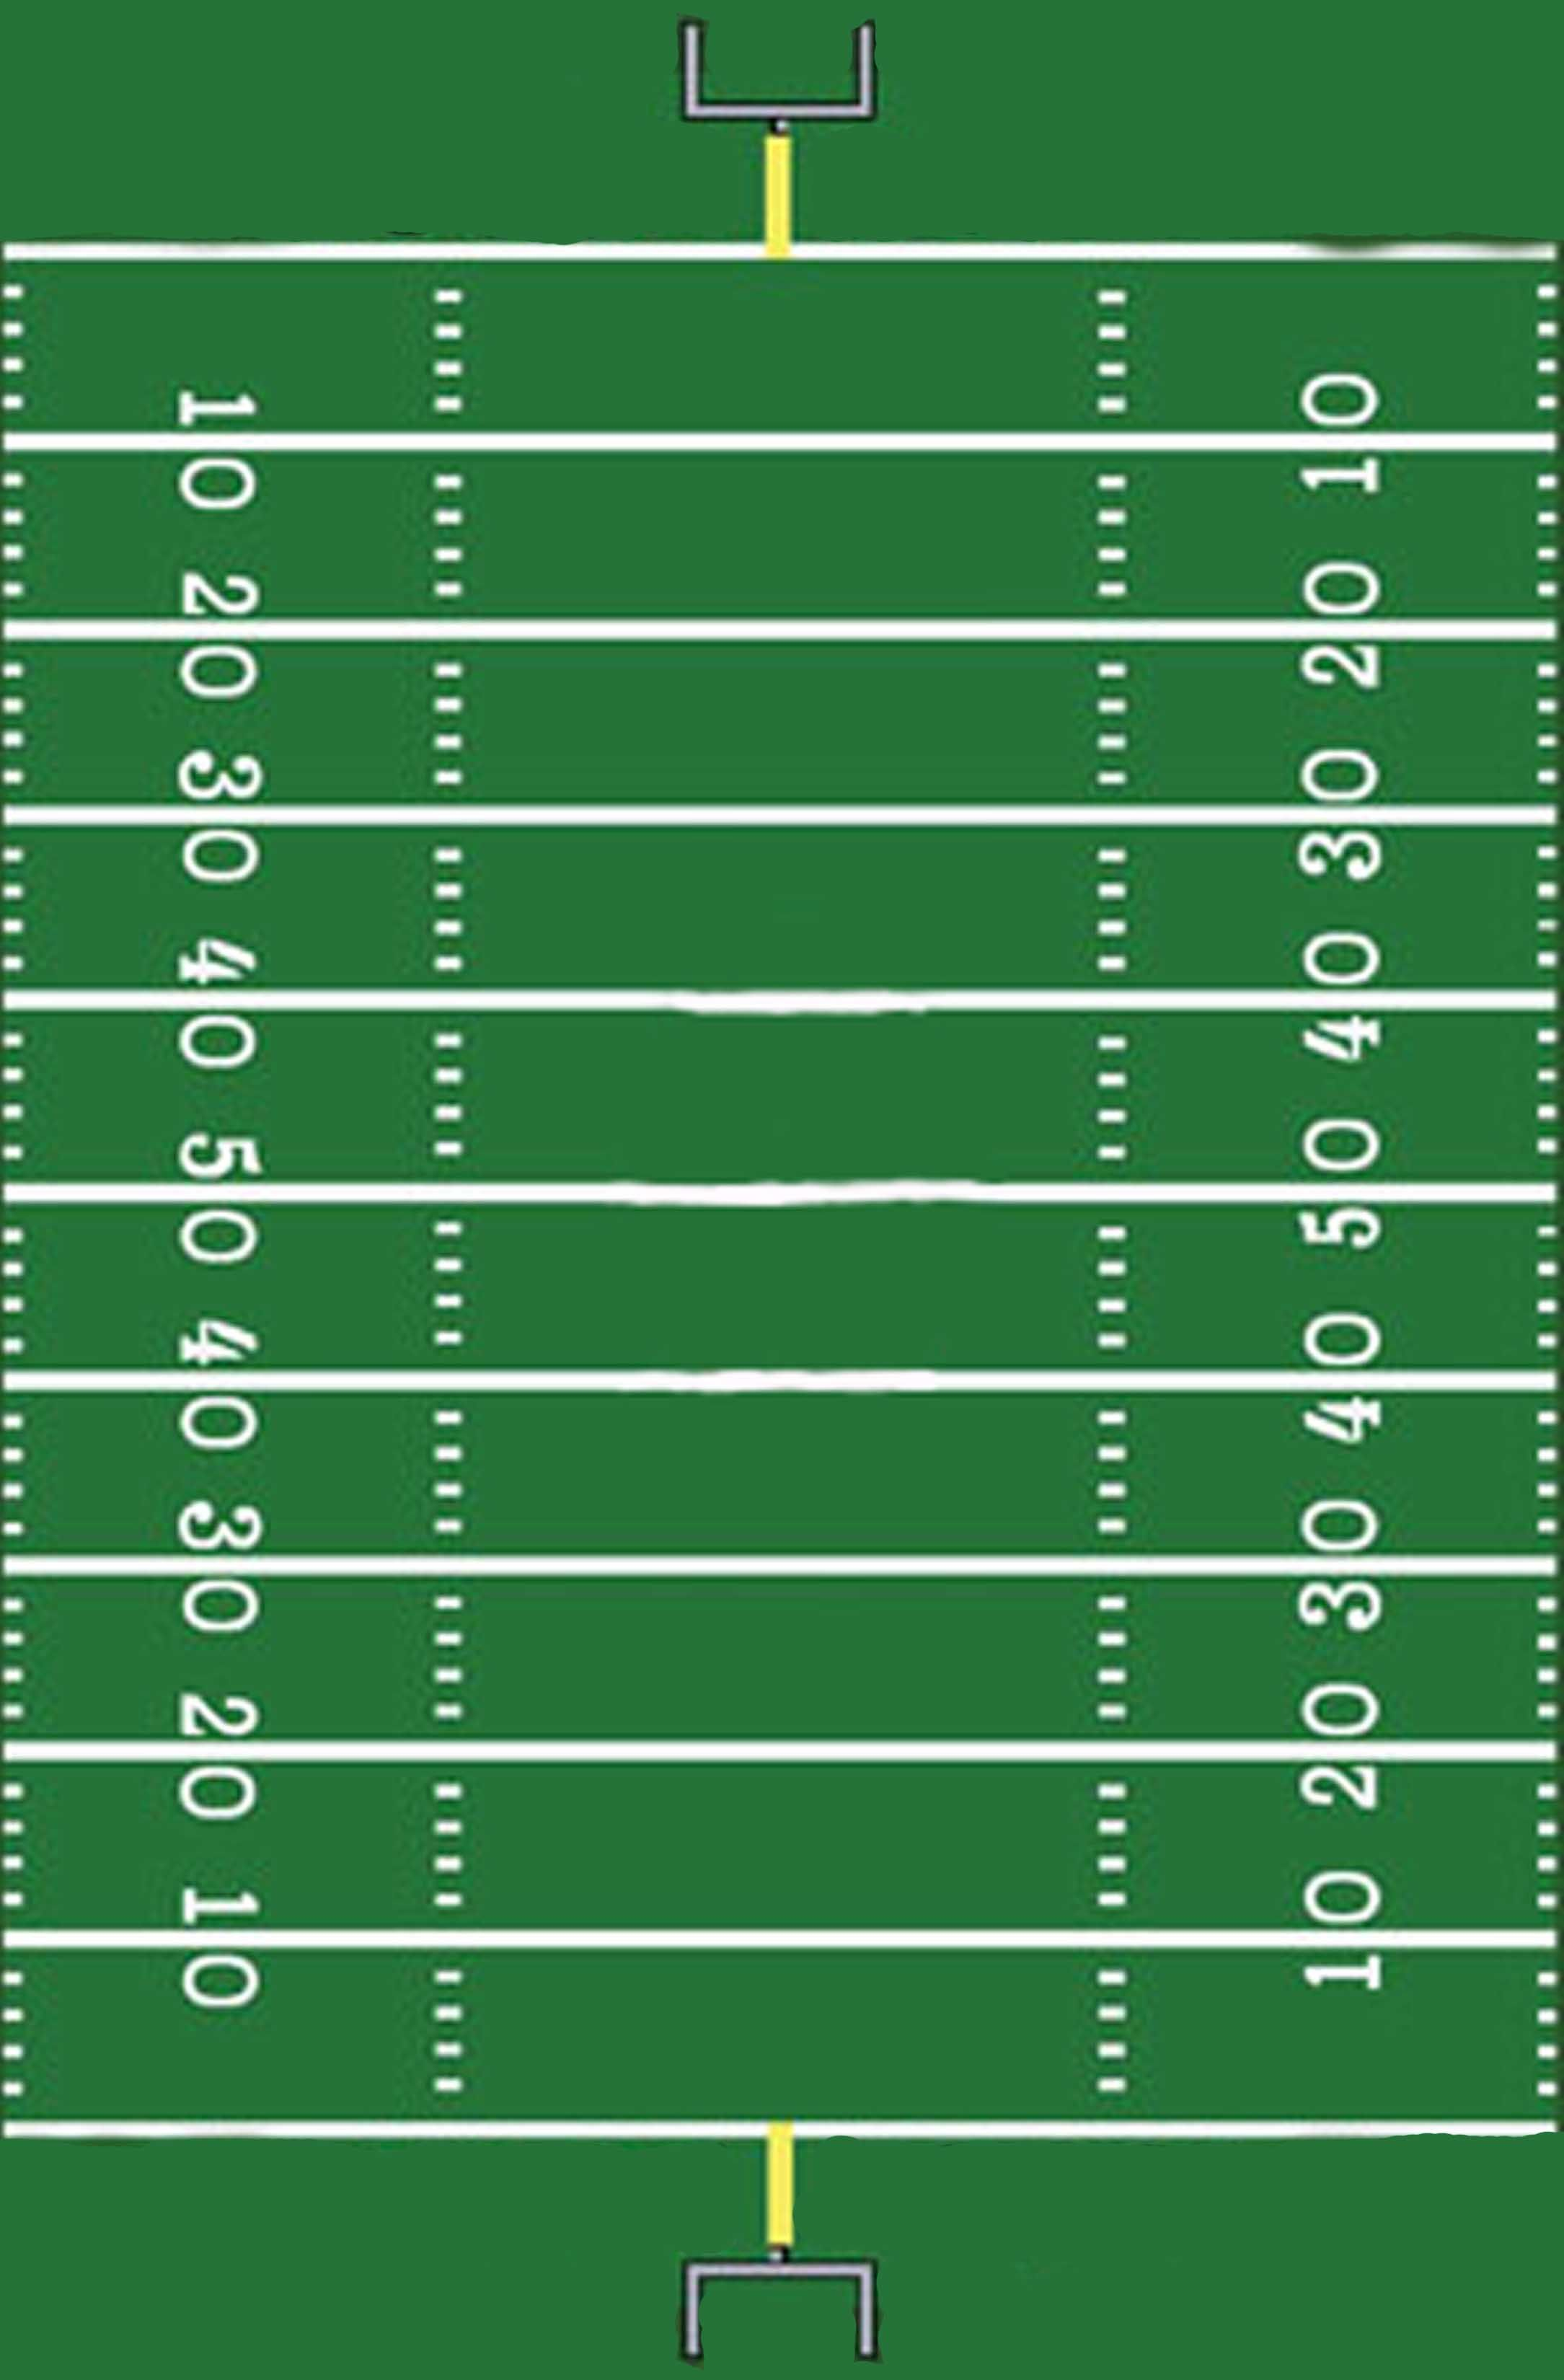 Print Out This Football Field And Let Your Kids Track The Ball And Learn How To Pay Attention